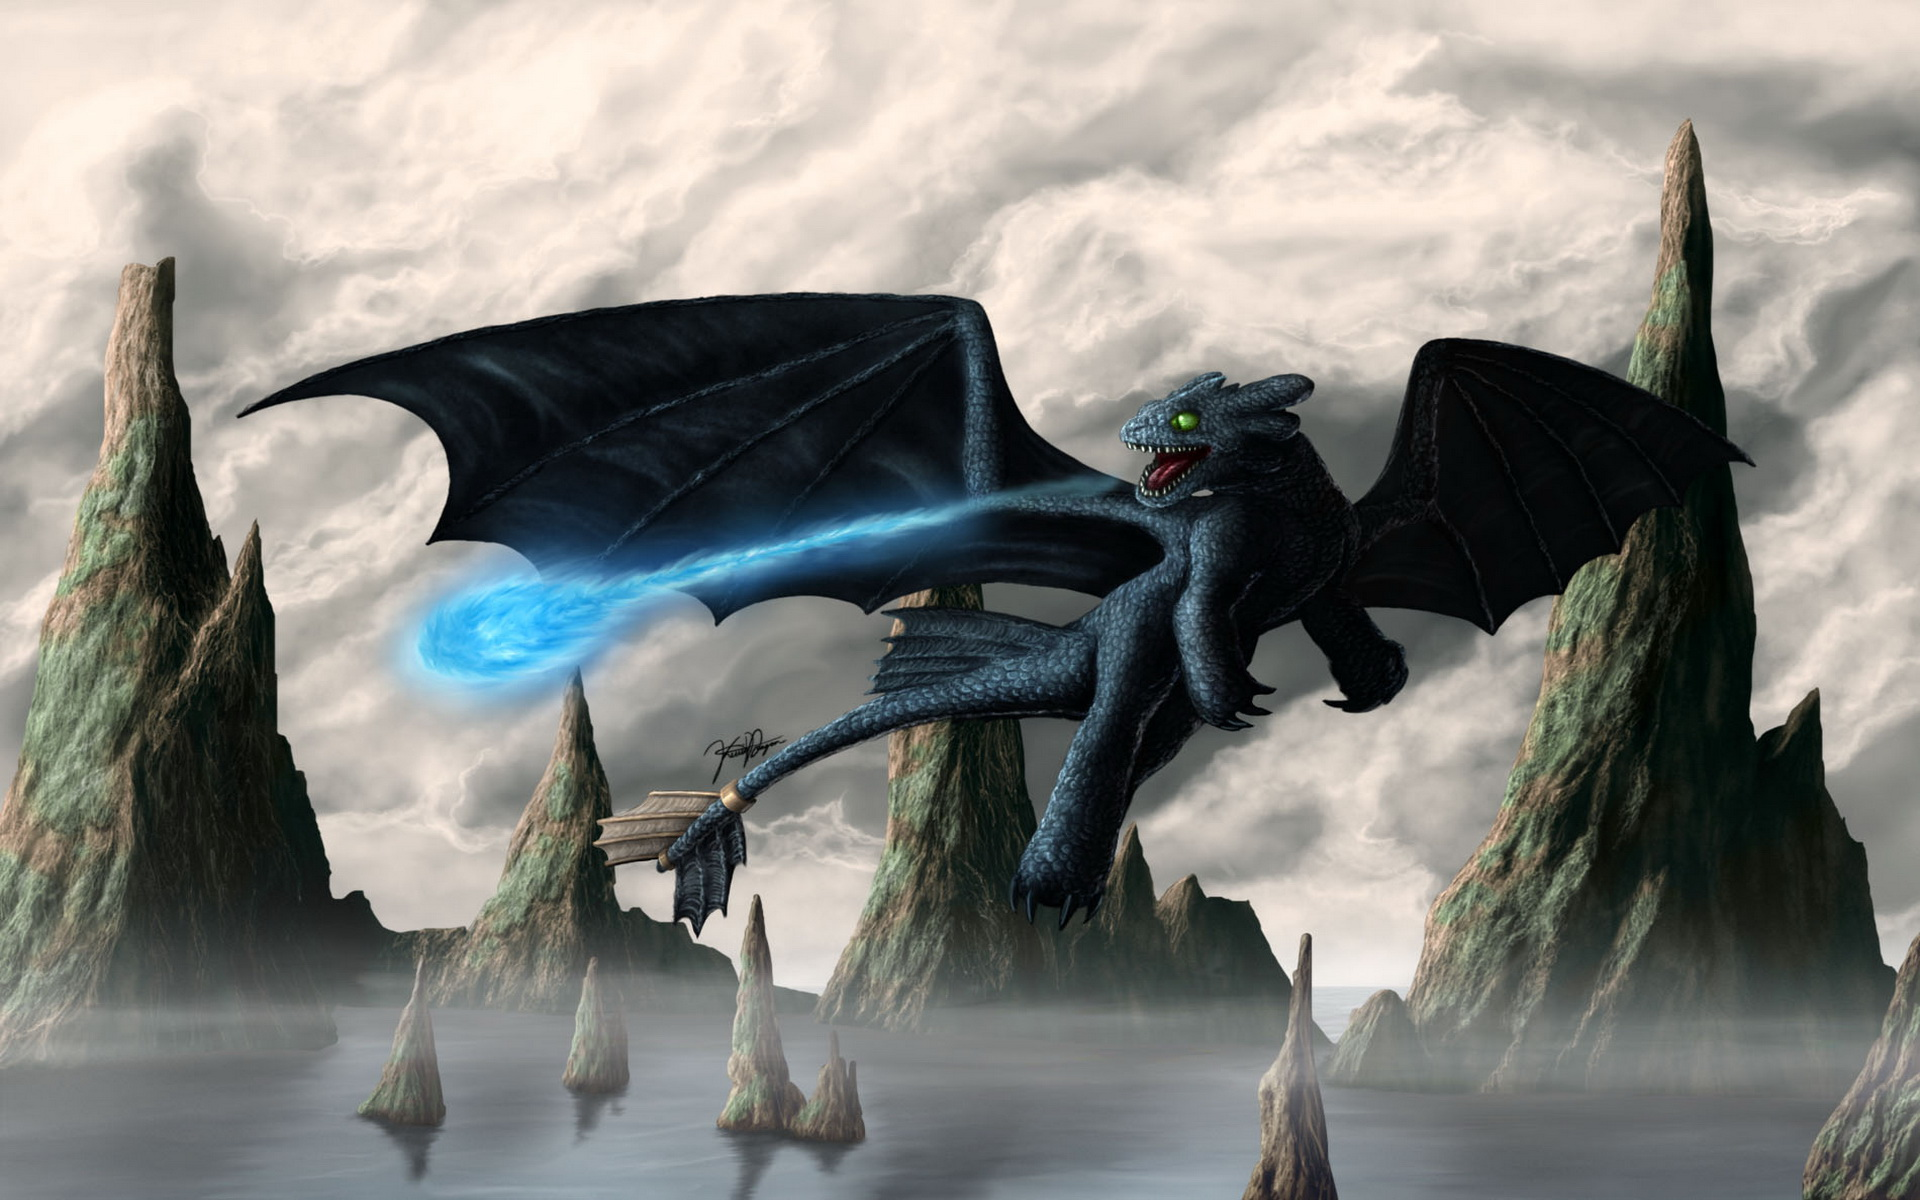 How to Train Your Dragon Wide Wallpaper - Wallpaper, High ...